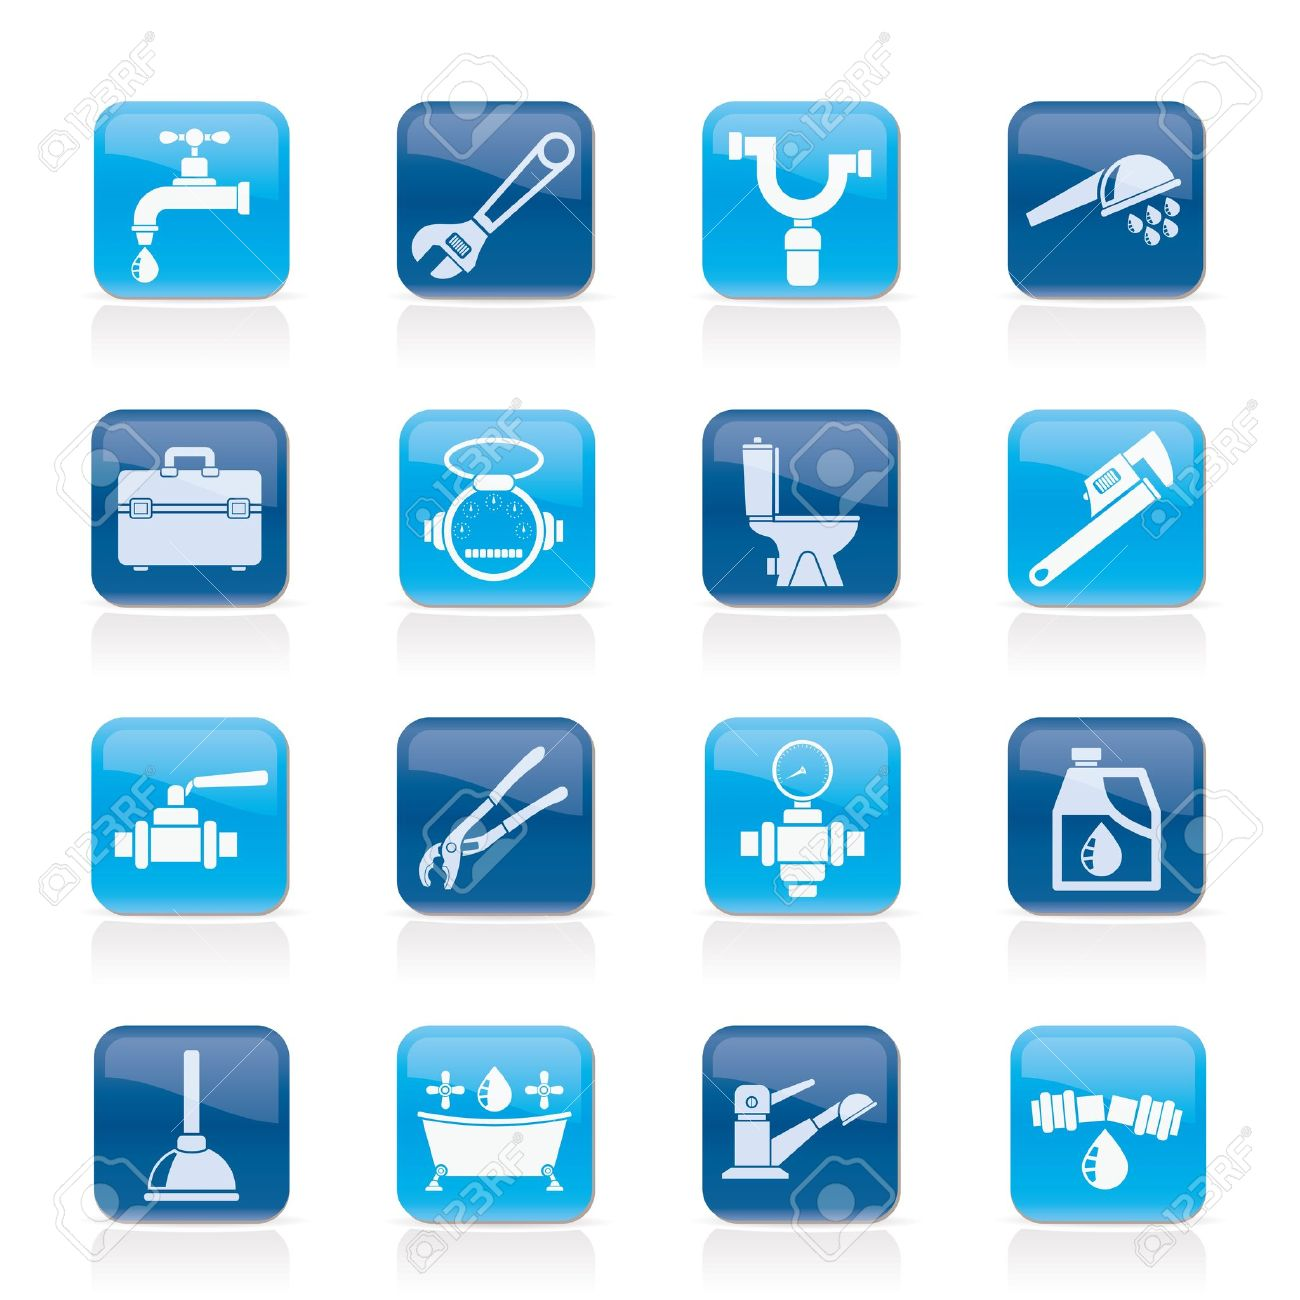 plumbing objects and tools icons - vector icon set - 17817542